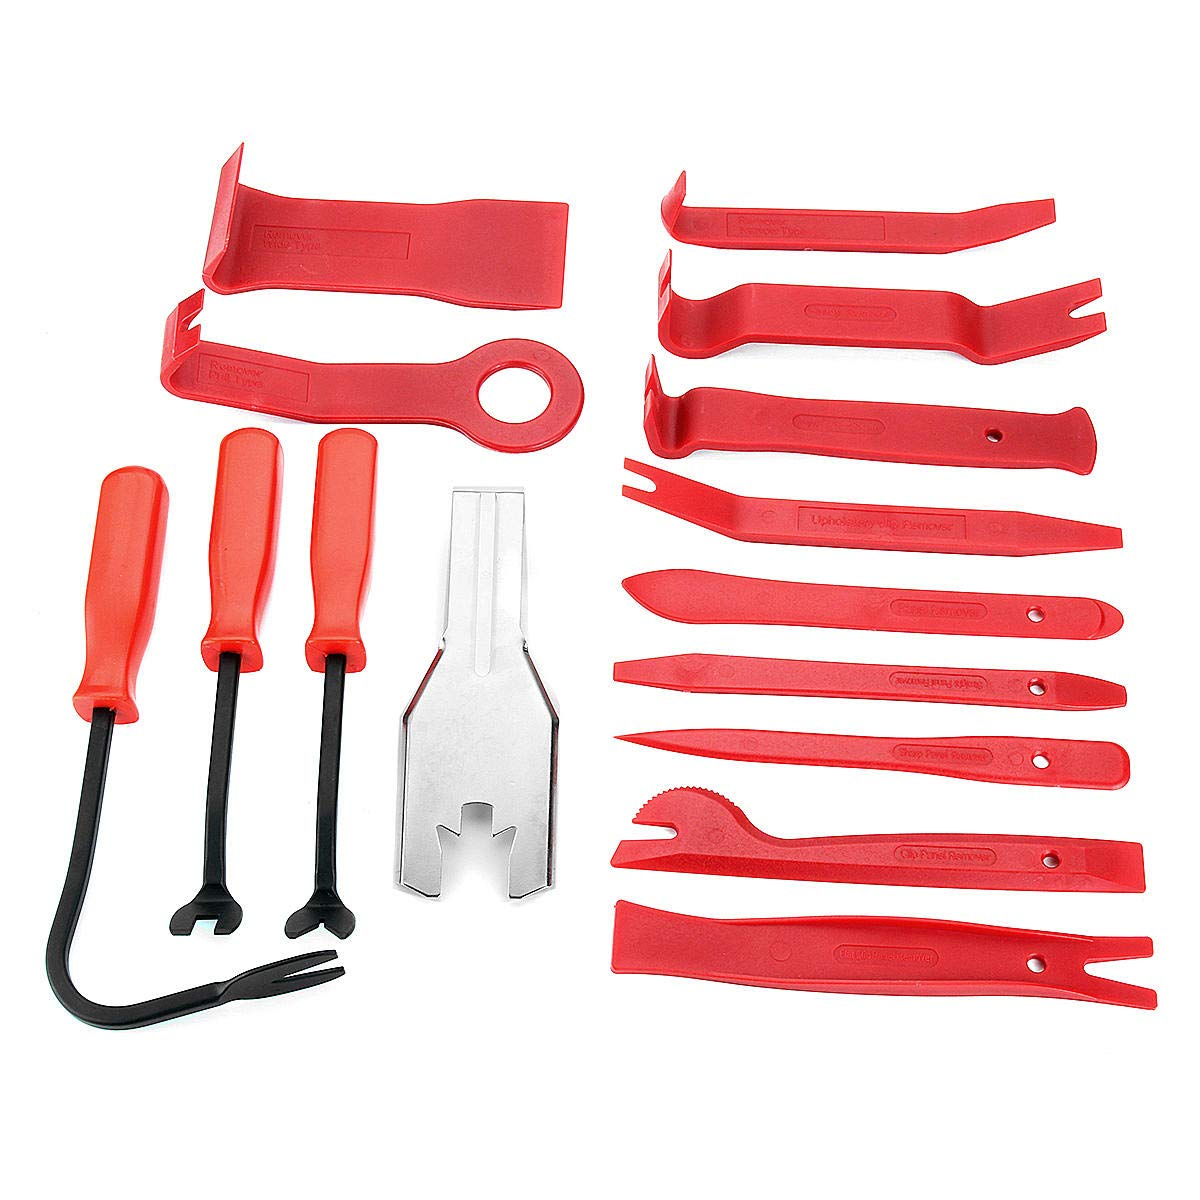 Anddoa 15pcs Meter Door Molding Remover Panel Trim Clip Removal Tools Kit Red Set by Anddoa (Image #1)